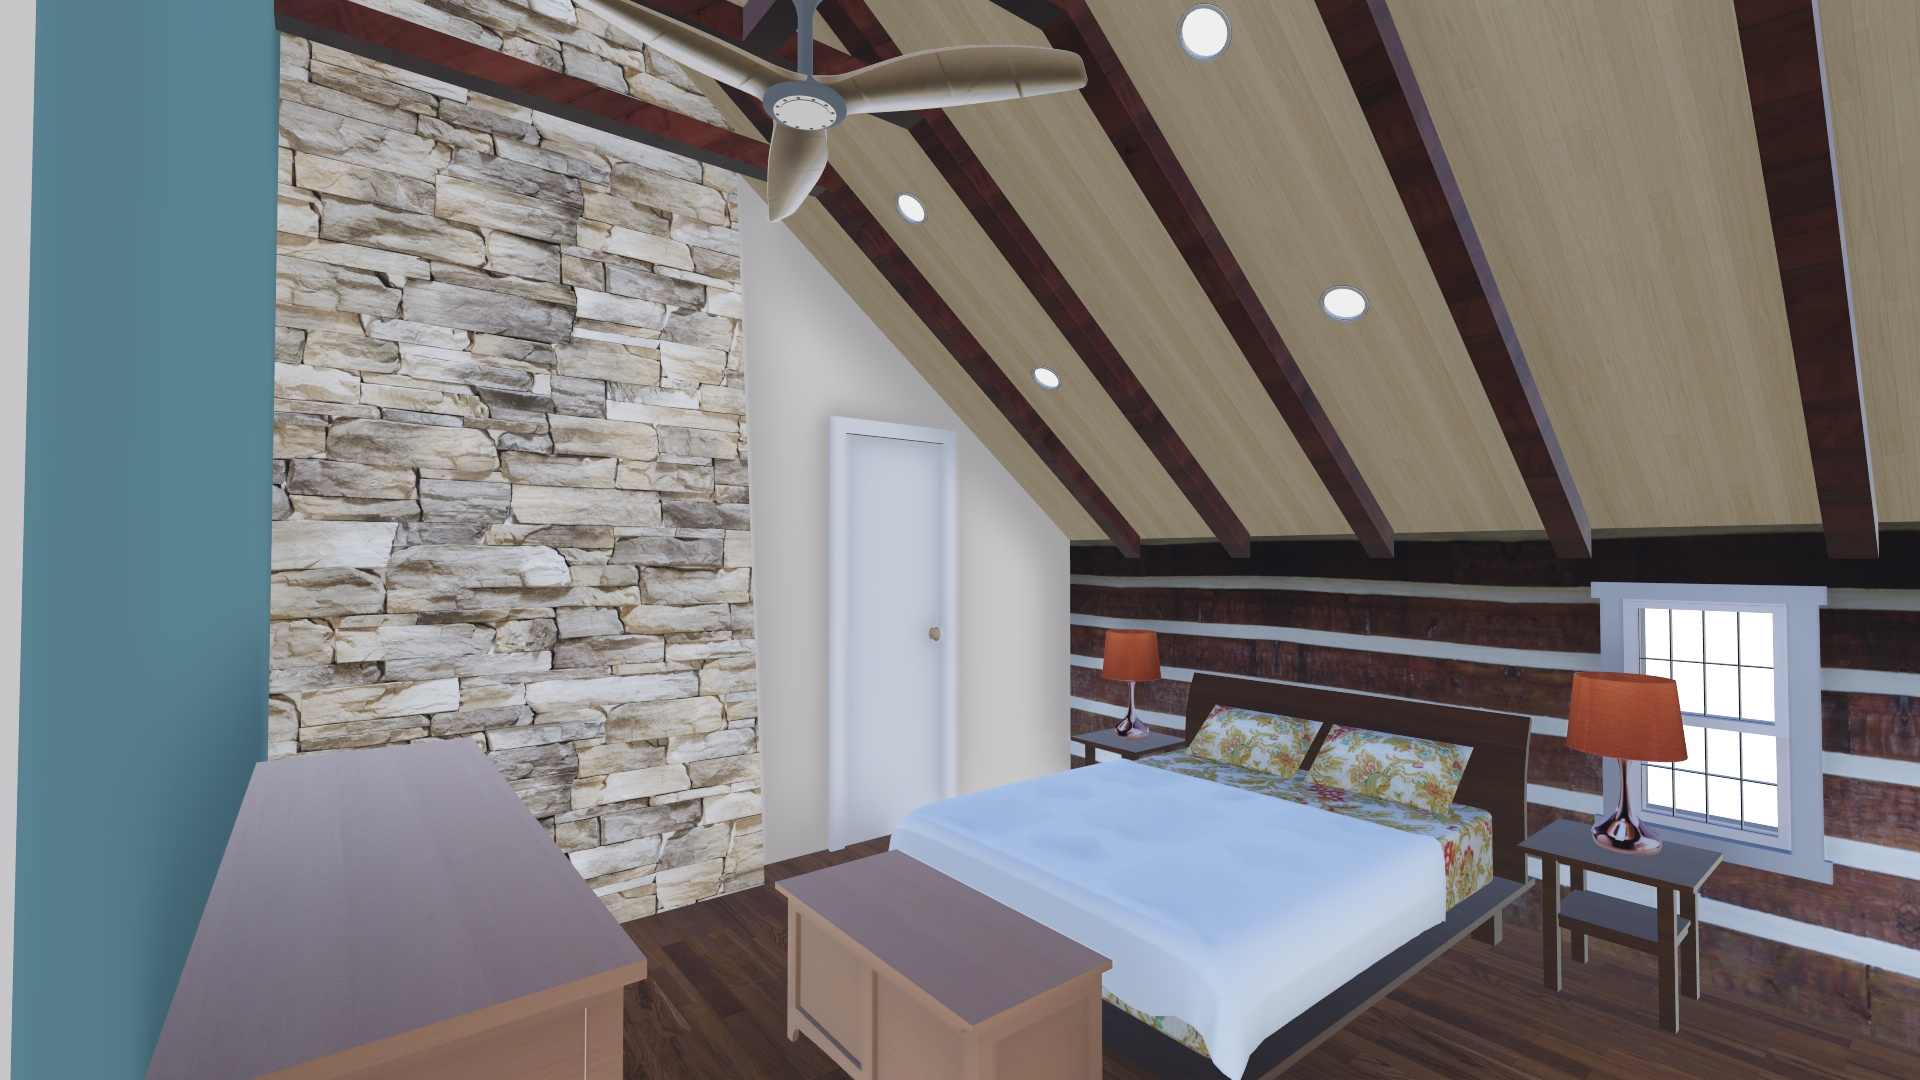 PROPOSED: Master Bedroom